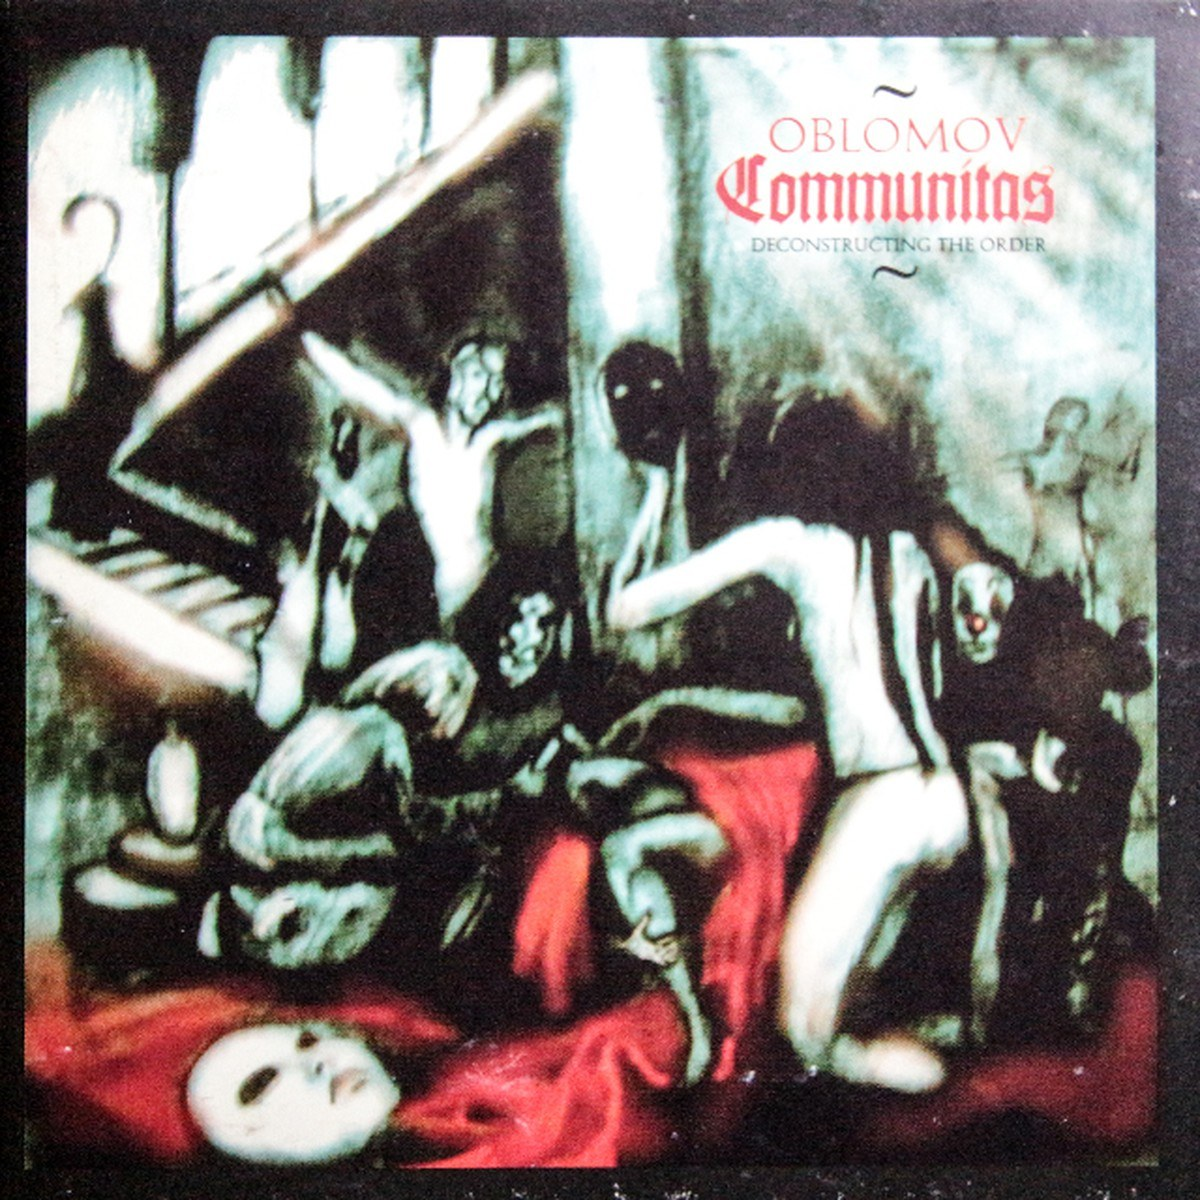 Review for Oblomov - Communitas (Deconstructing the Order)